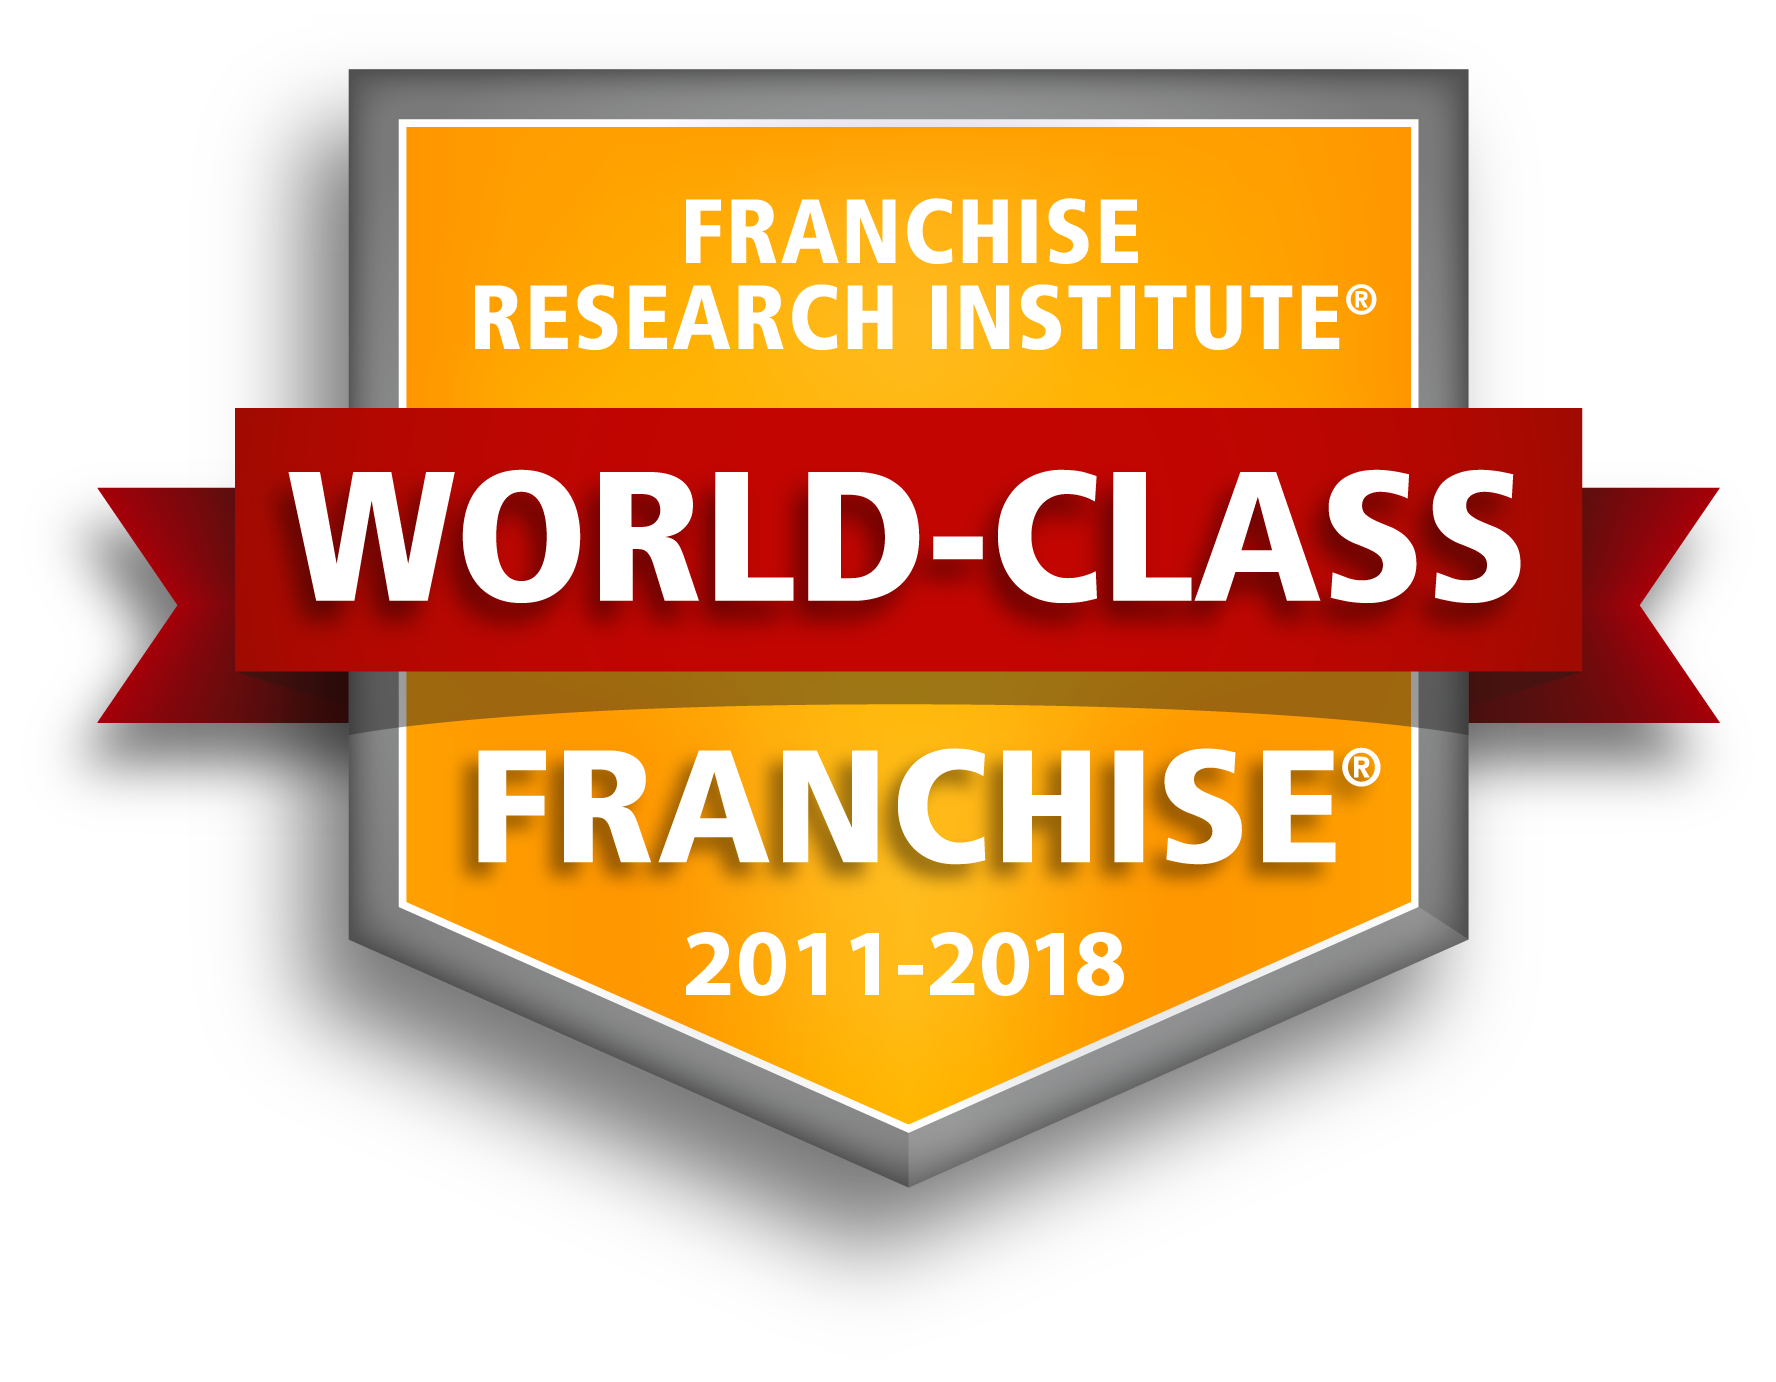 Franchise Research Institute World-Class Award 2018